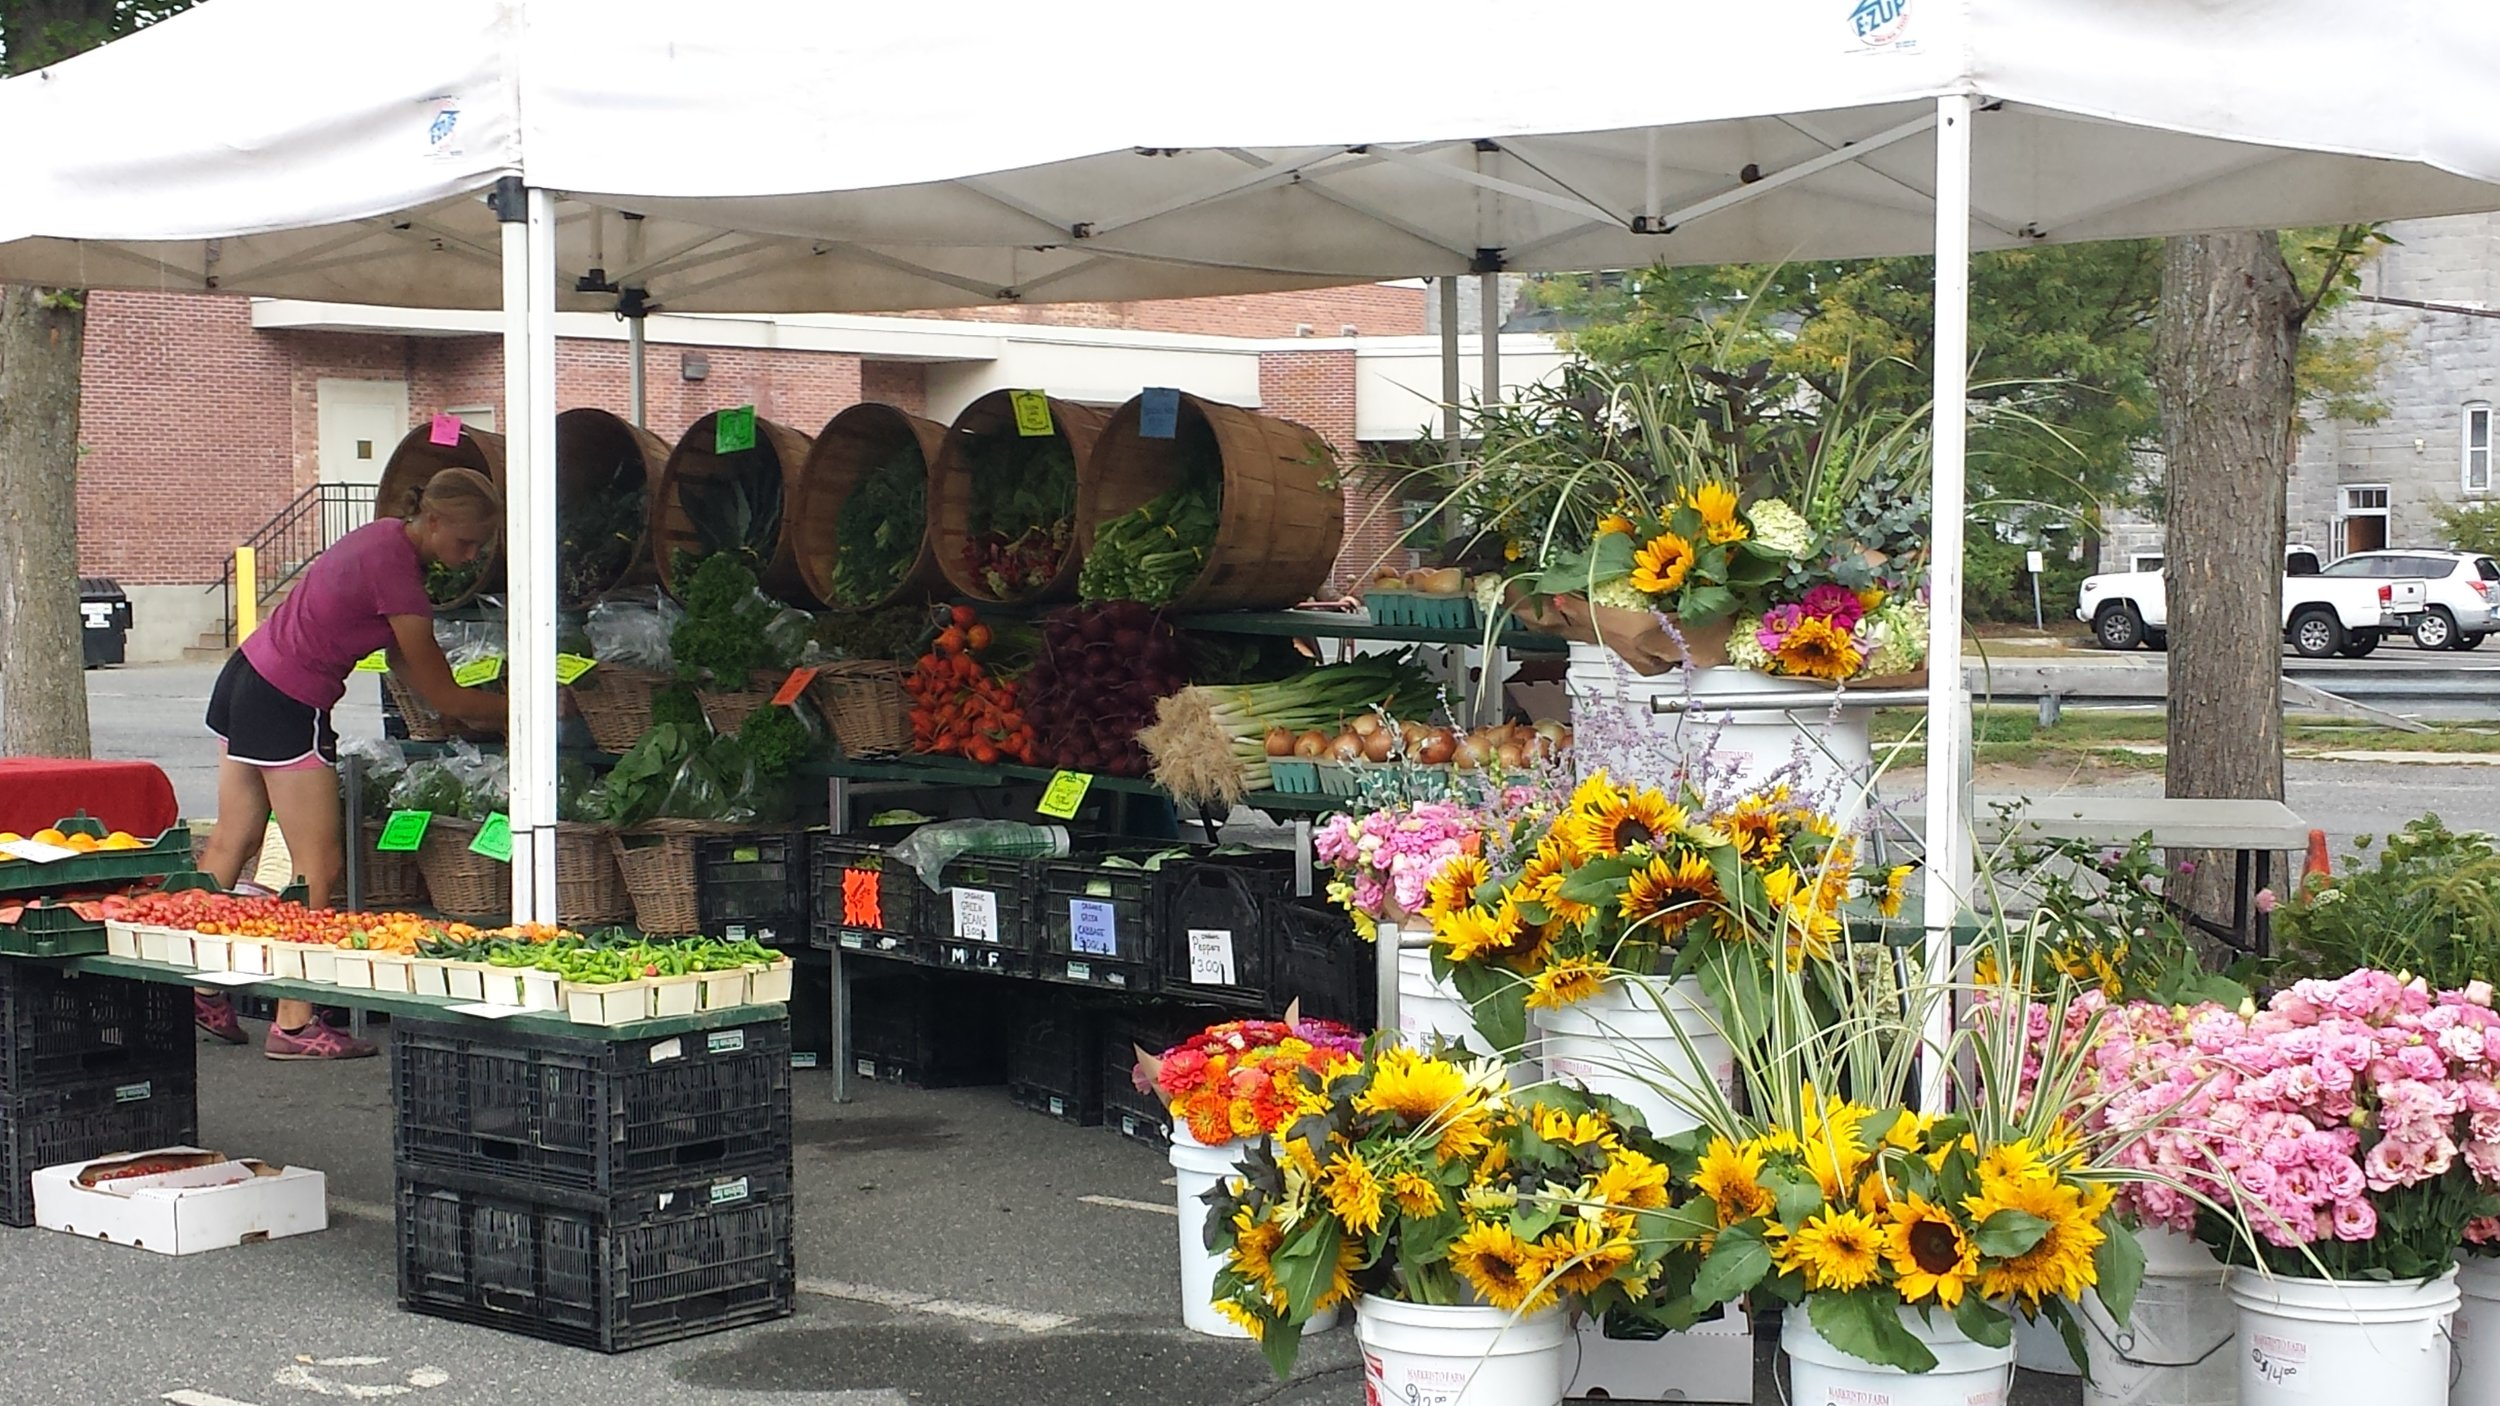 The Great Barrington Farmers' Market - 9-1pm Every Saturday, Mothers' Day through October18 Church Street, Great Barrington, MA, 01230